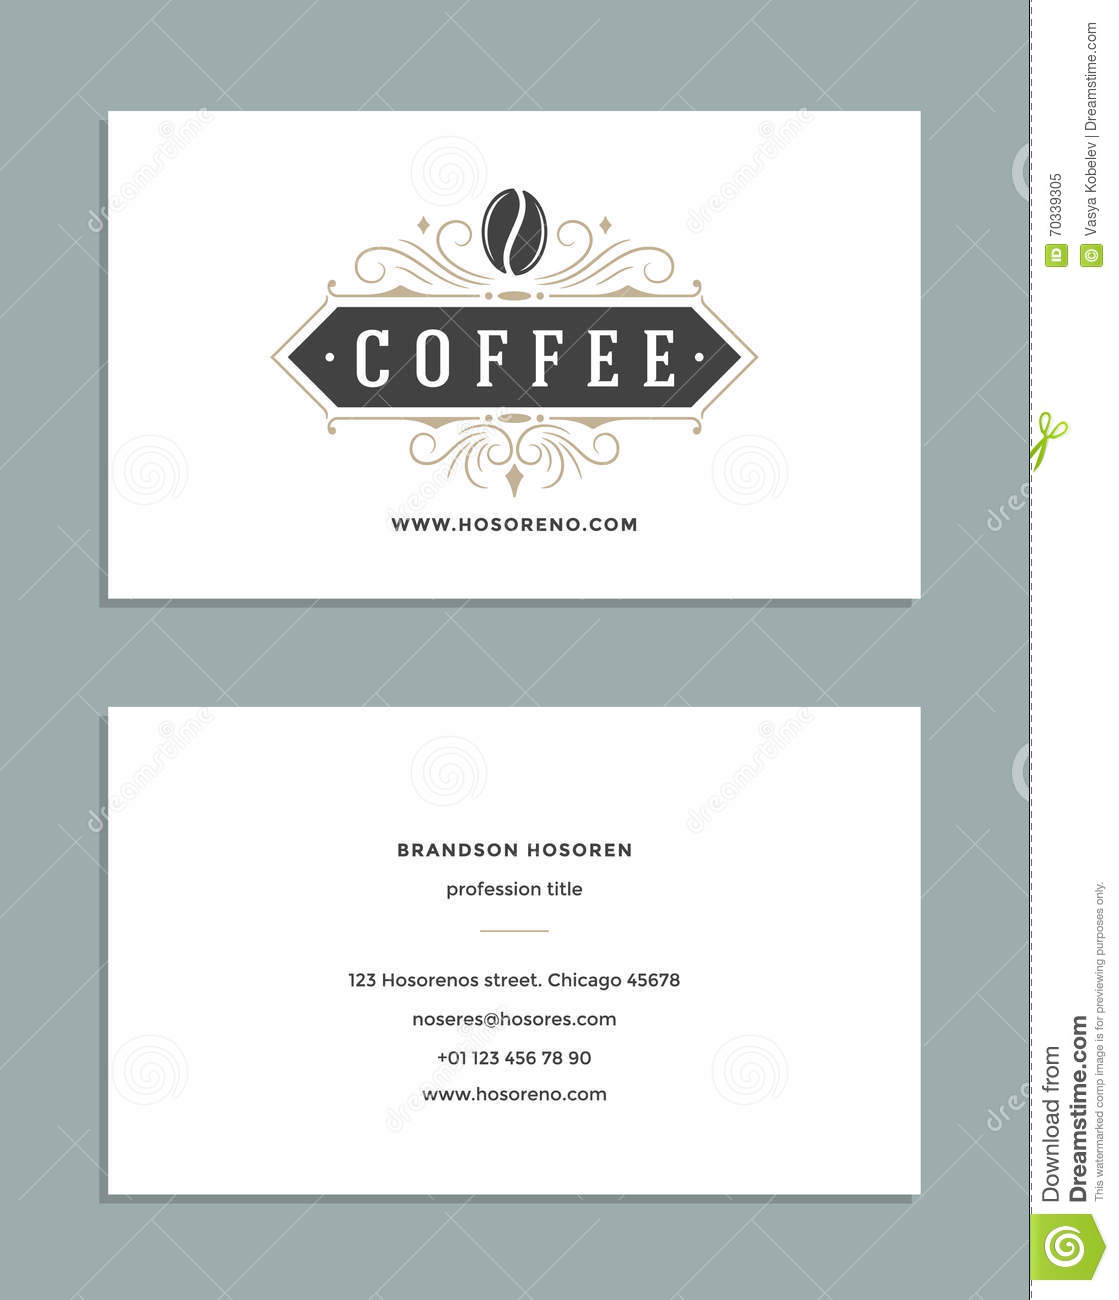 Business card design and retro style template coffee shop for Coffee business